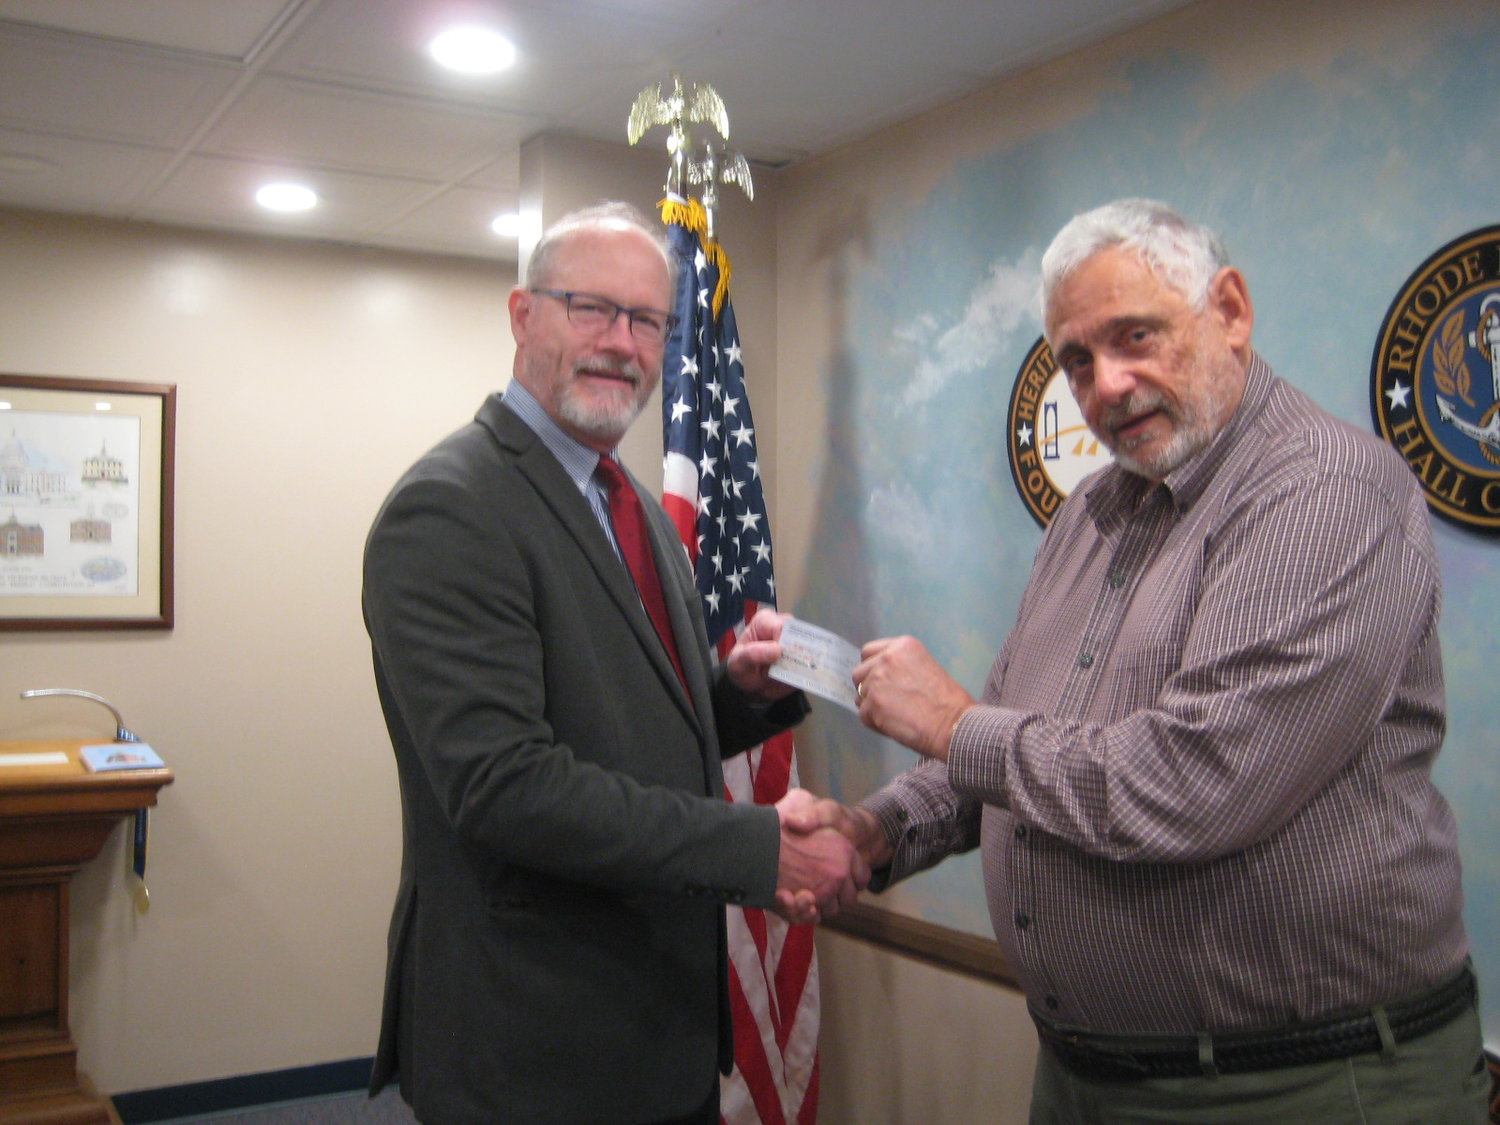 Scott A. Reese (L) Department Commander, RI Sons of Union Veterans of the Civil War receives a grant from Russ DeSimone, Grants Committee Chairman, Heritage Harbor Foundation. Mr. Reese is pledging the funds to the Friends of Vicksburg.